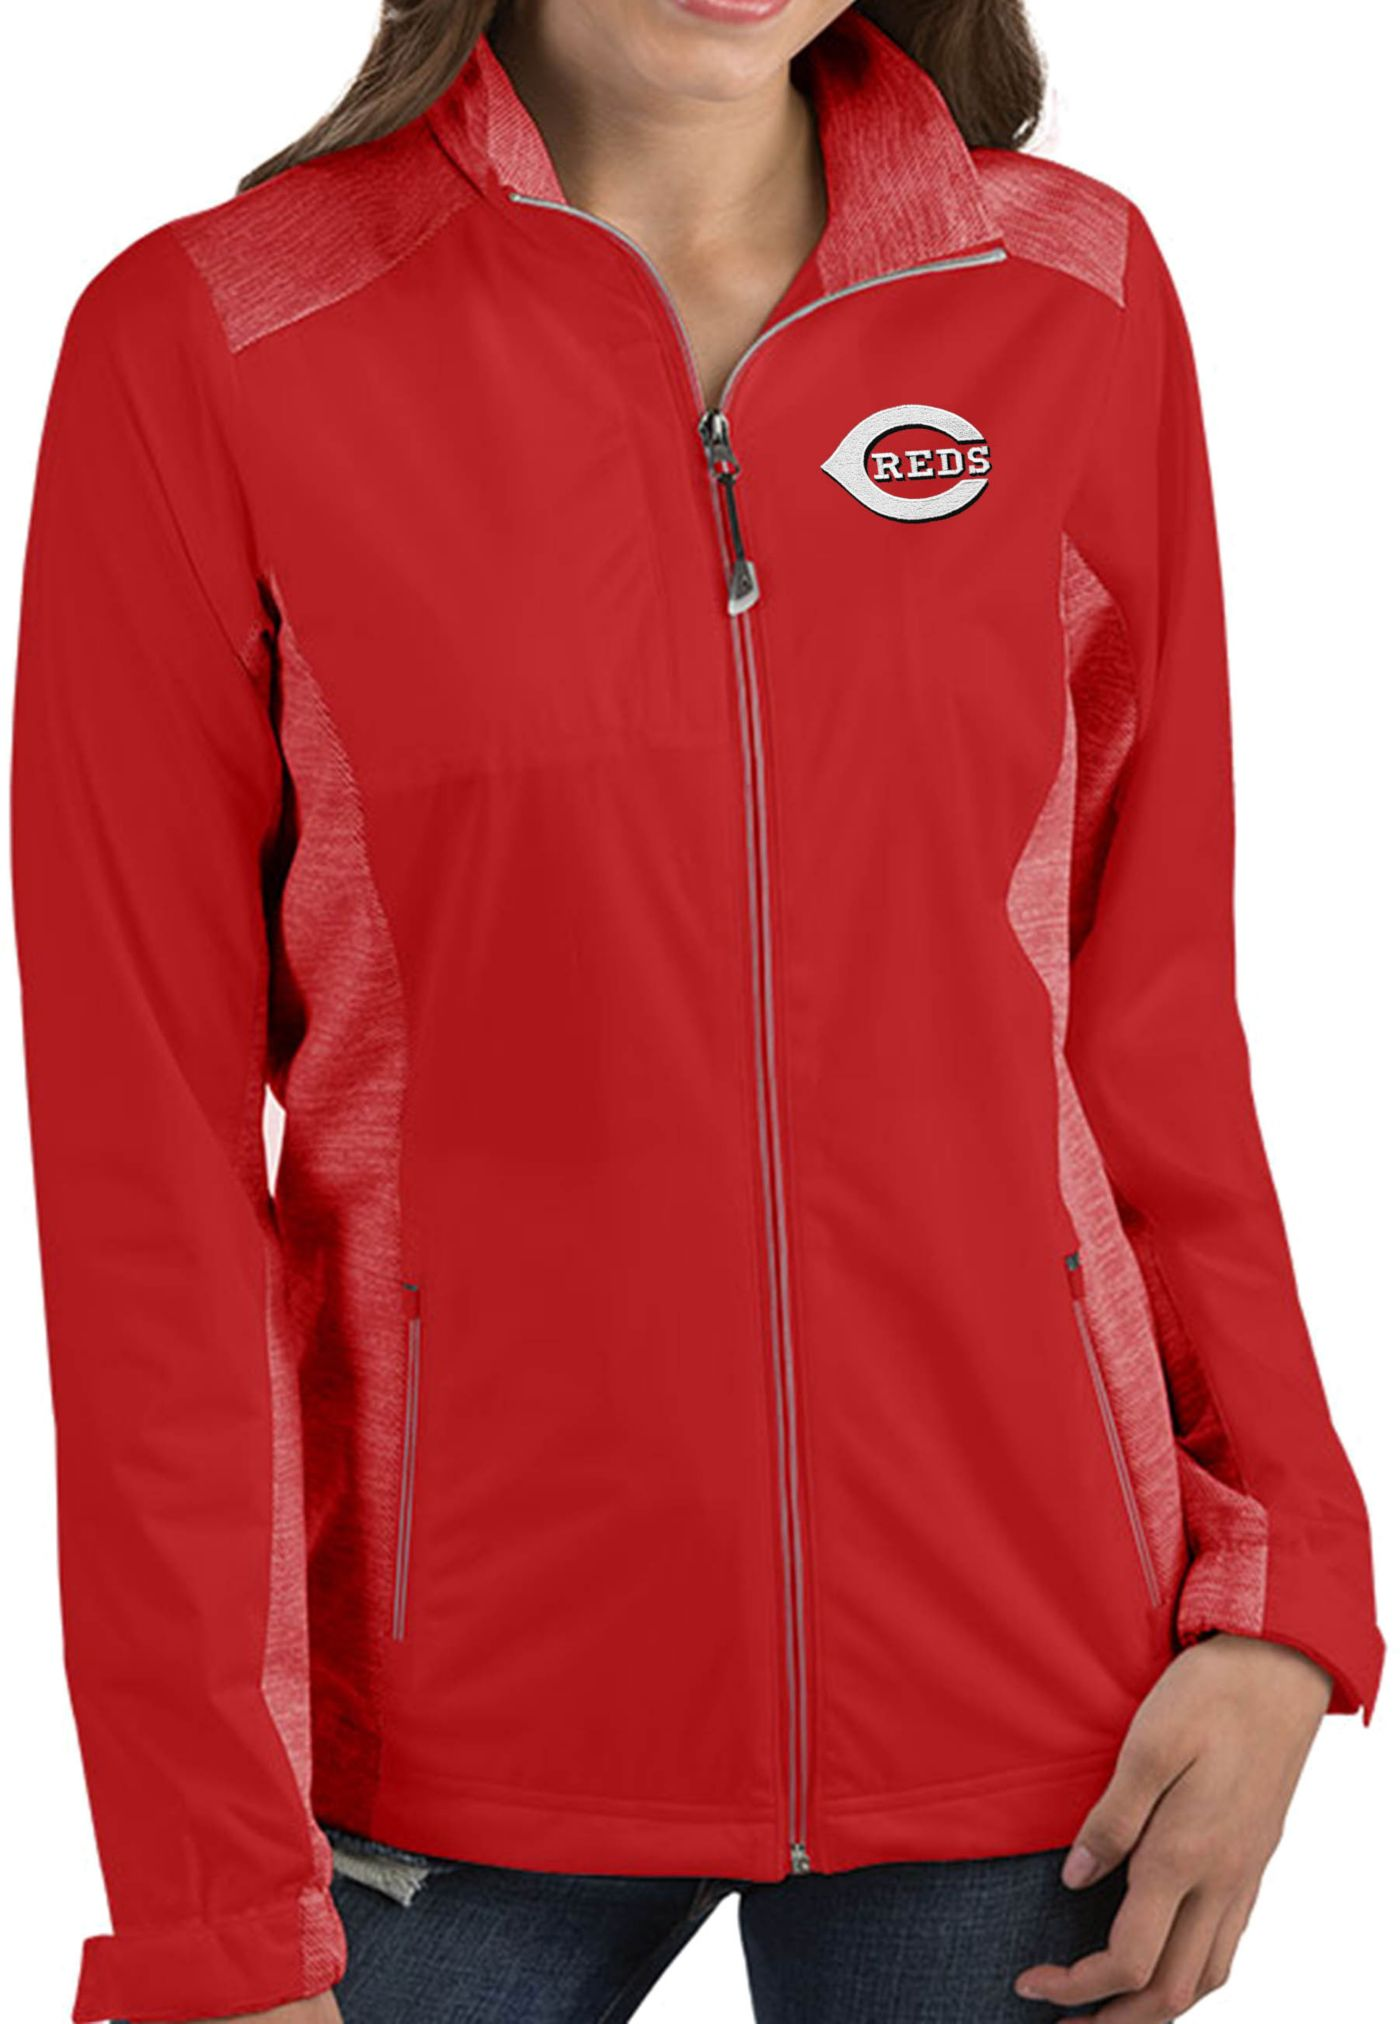 Antigua Women's Cincinatti Reds Revolve Red Full-Zip Jacket